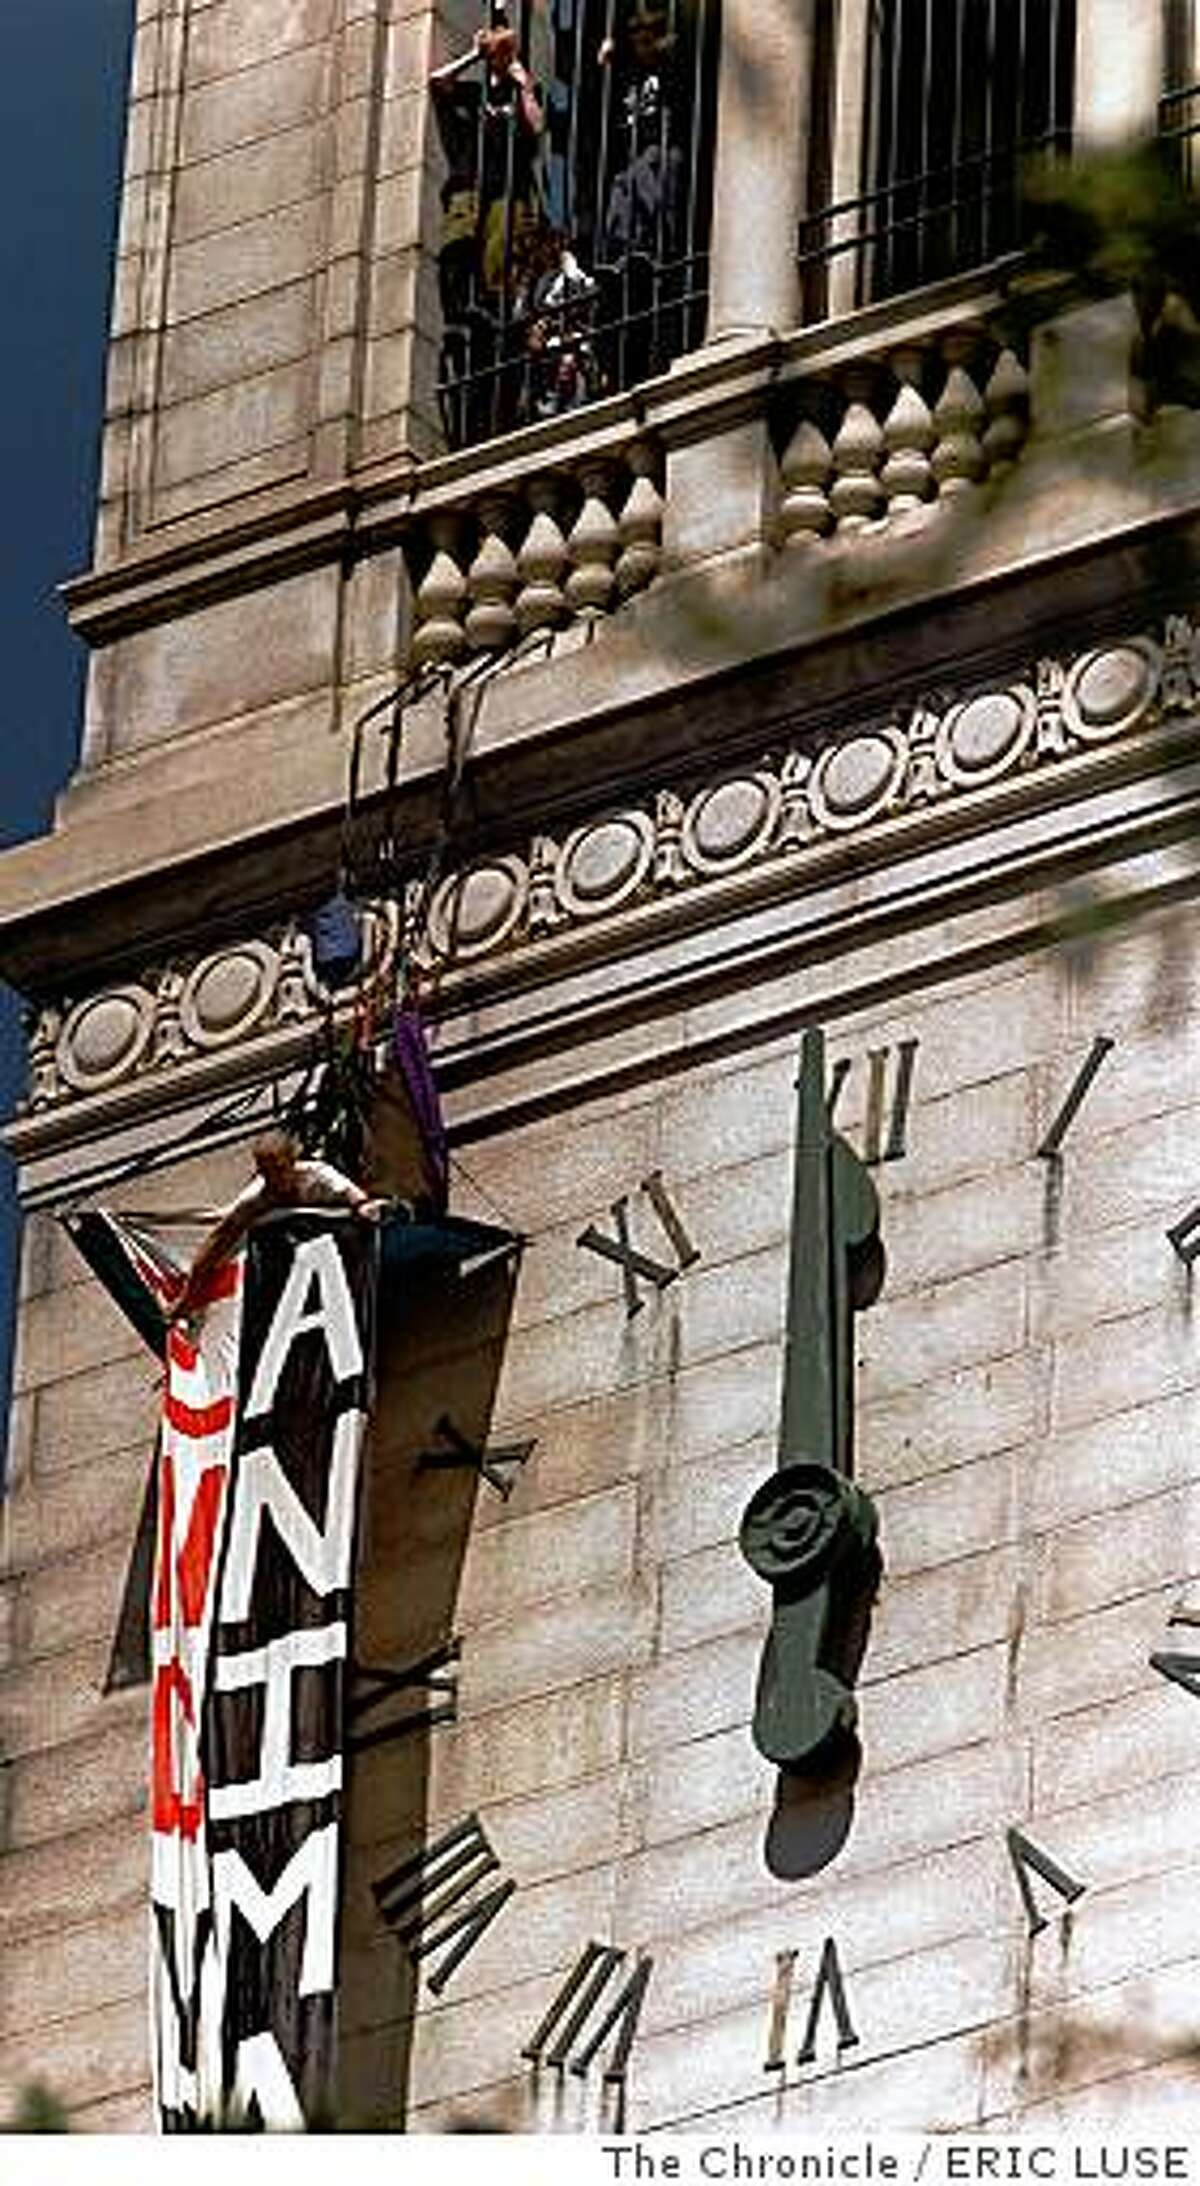 ANIMALS/C/21APRIL98/MN/EL Mike Kennedy,Davis, attempts to unvail a banner on UC Berkeley's Campanile bell tower protesting the use of animals in laboratory testing at UC Berkeley. He is member of Animal Rights Direct Action Coalition.